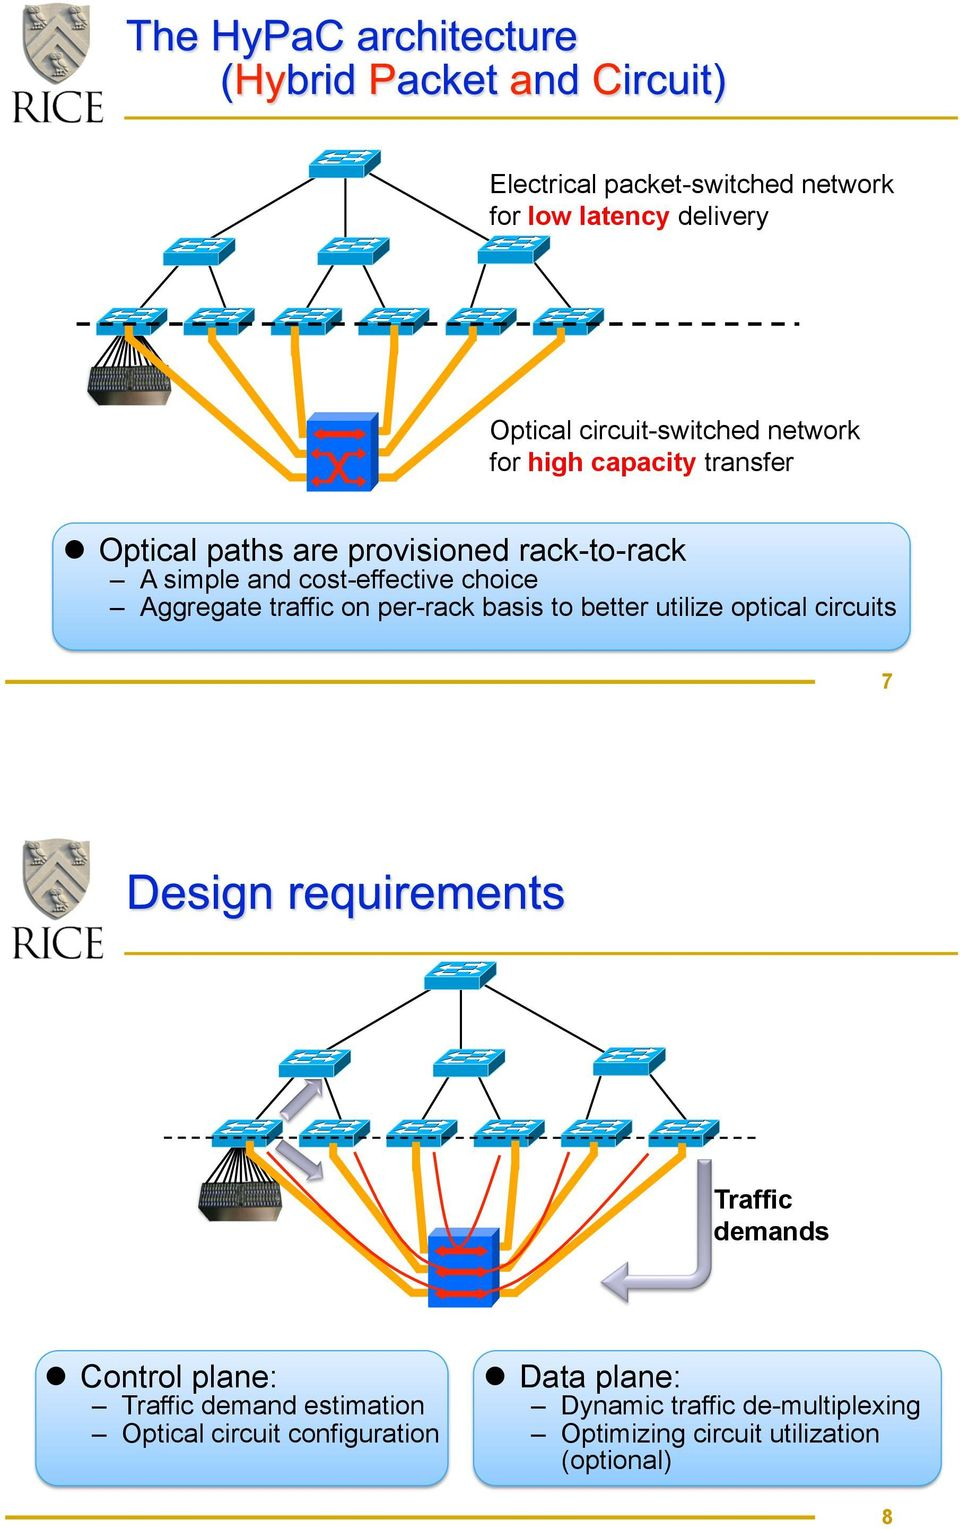 Optical paths are provisioned rack-to-rack A simple and cost-effective choice Aggregate traffic on per-rack